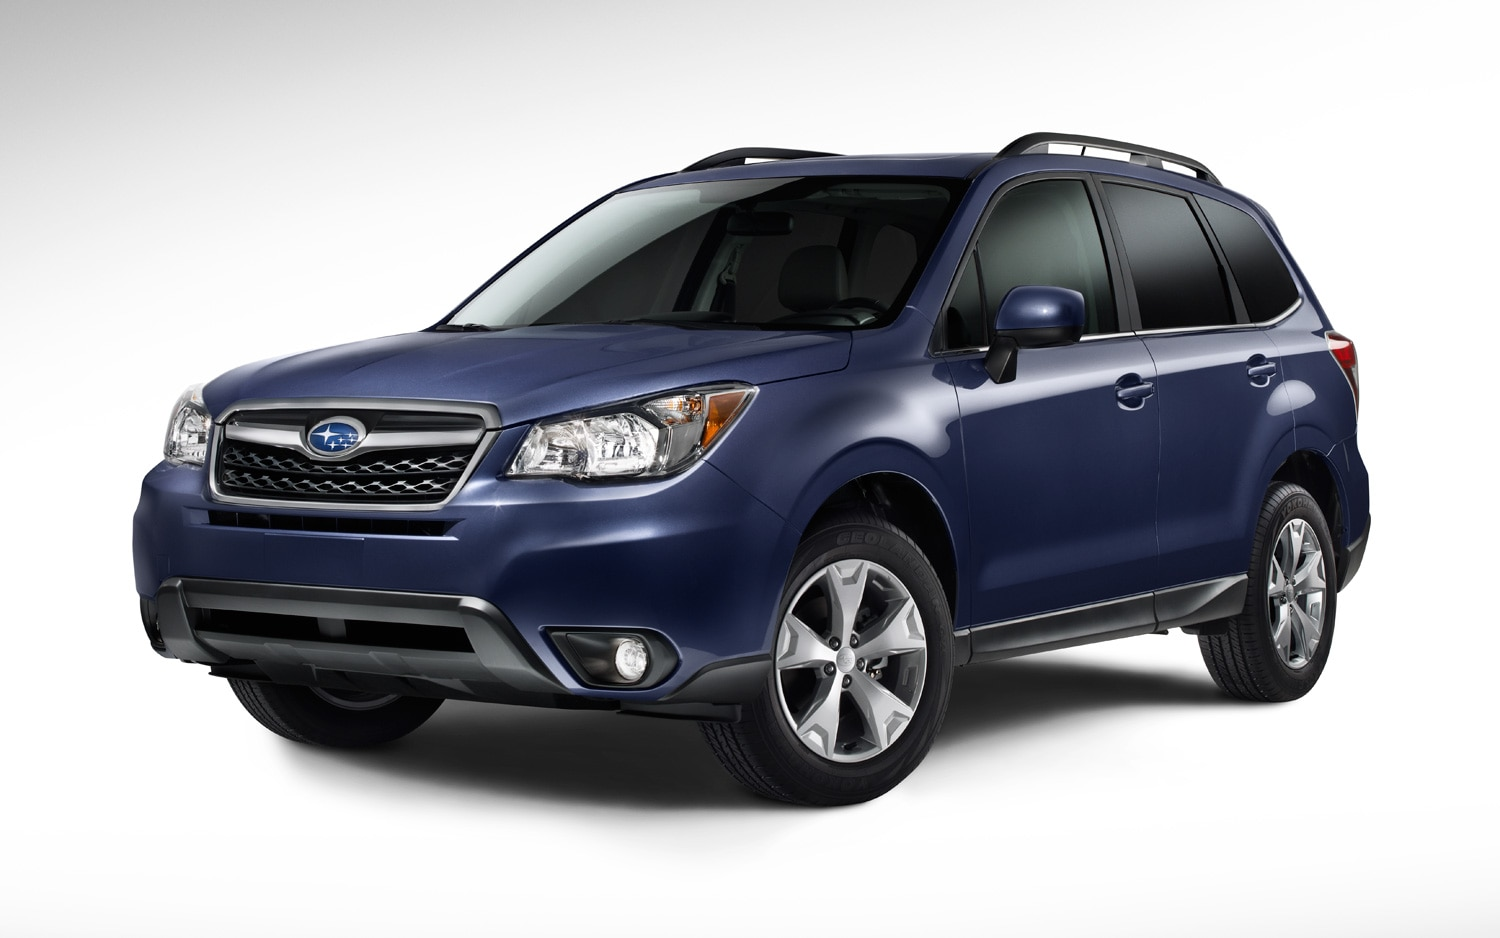 2014 Subaru Forester Front Three Quarter Blue1